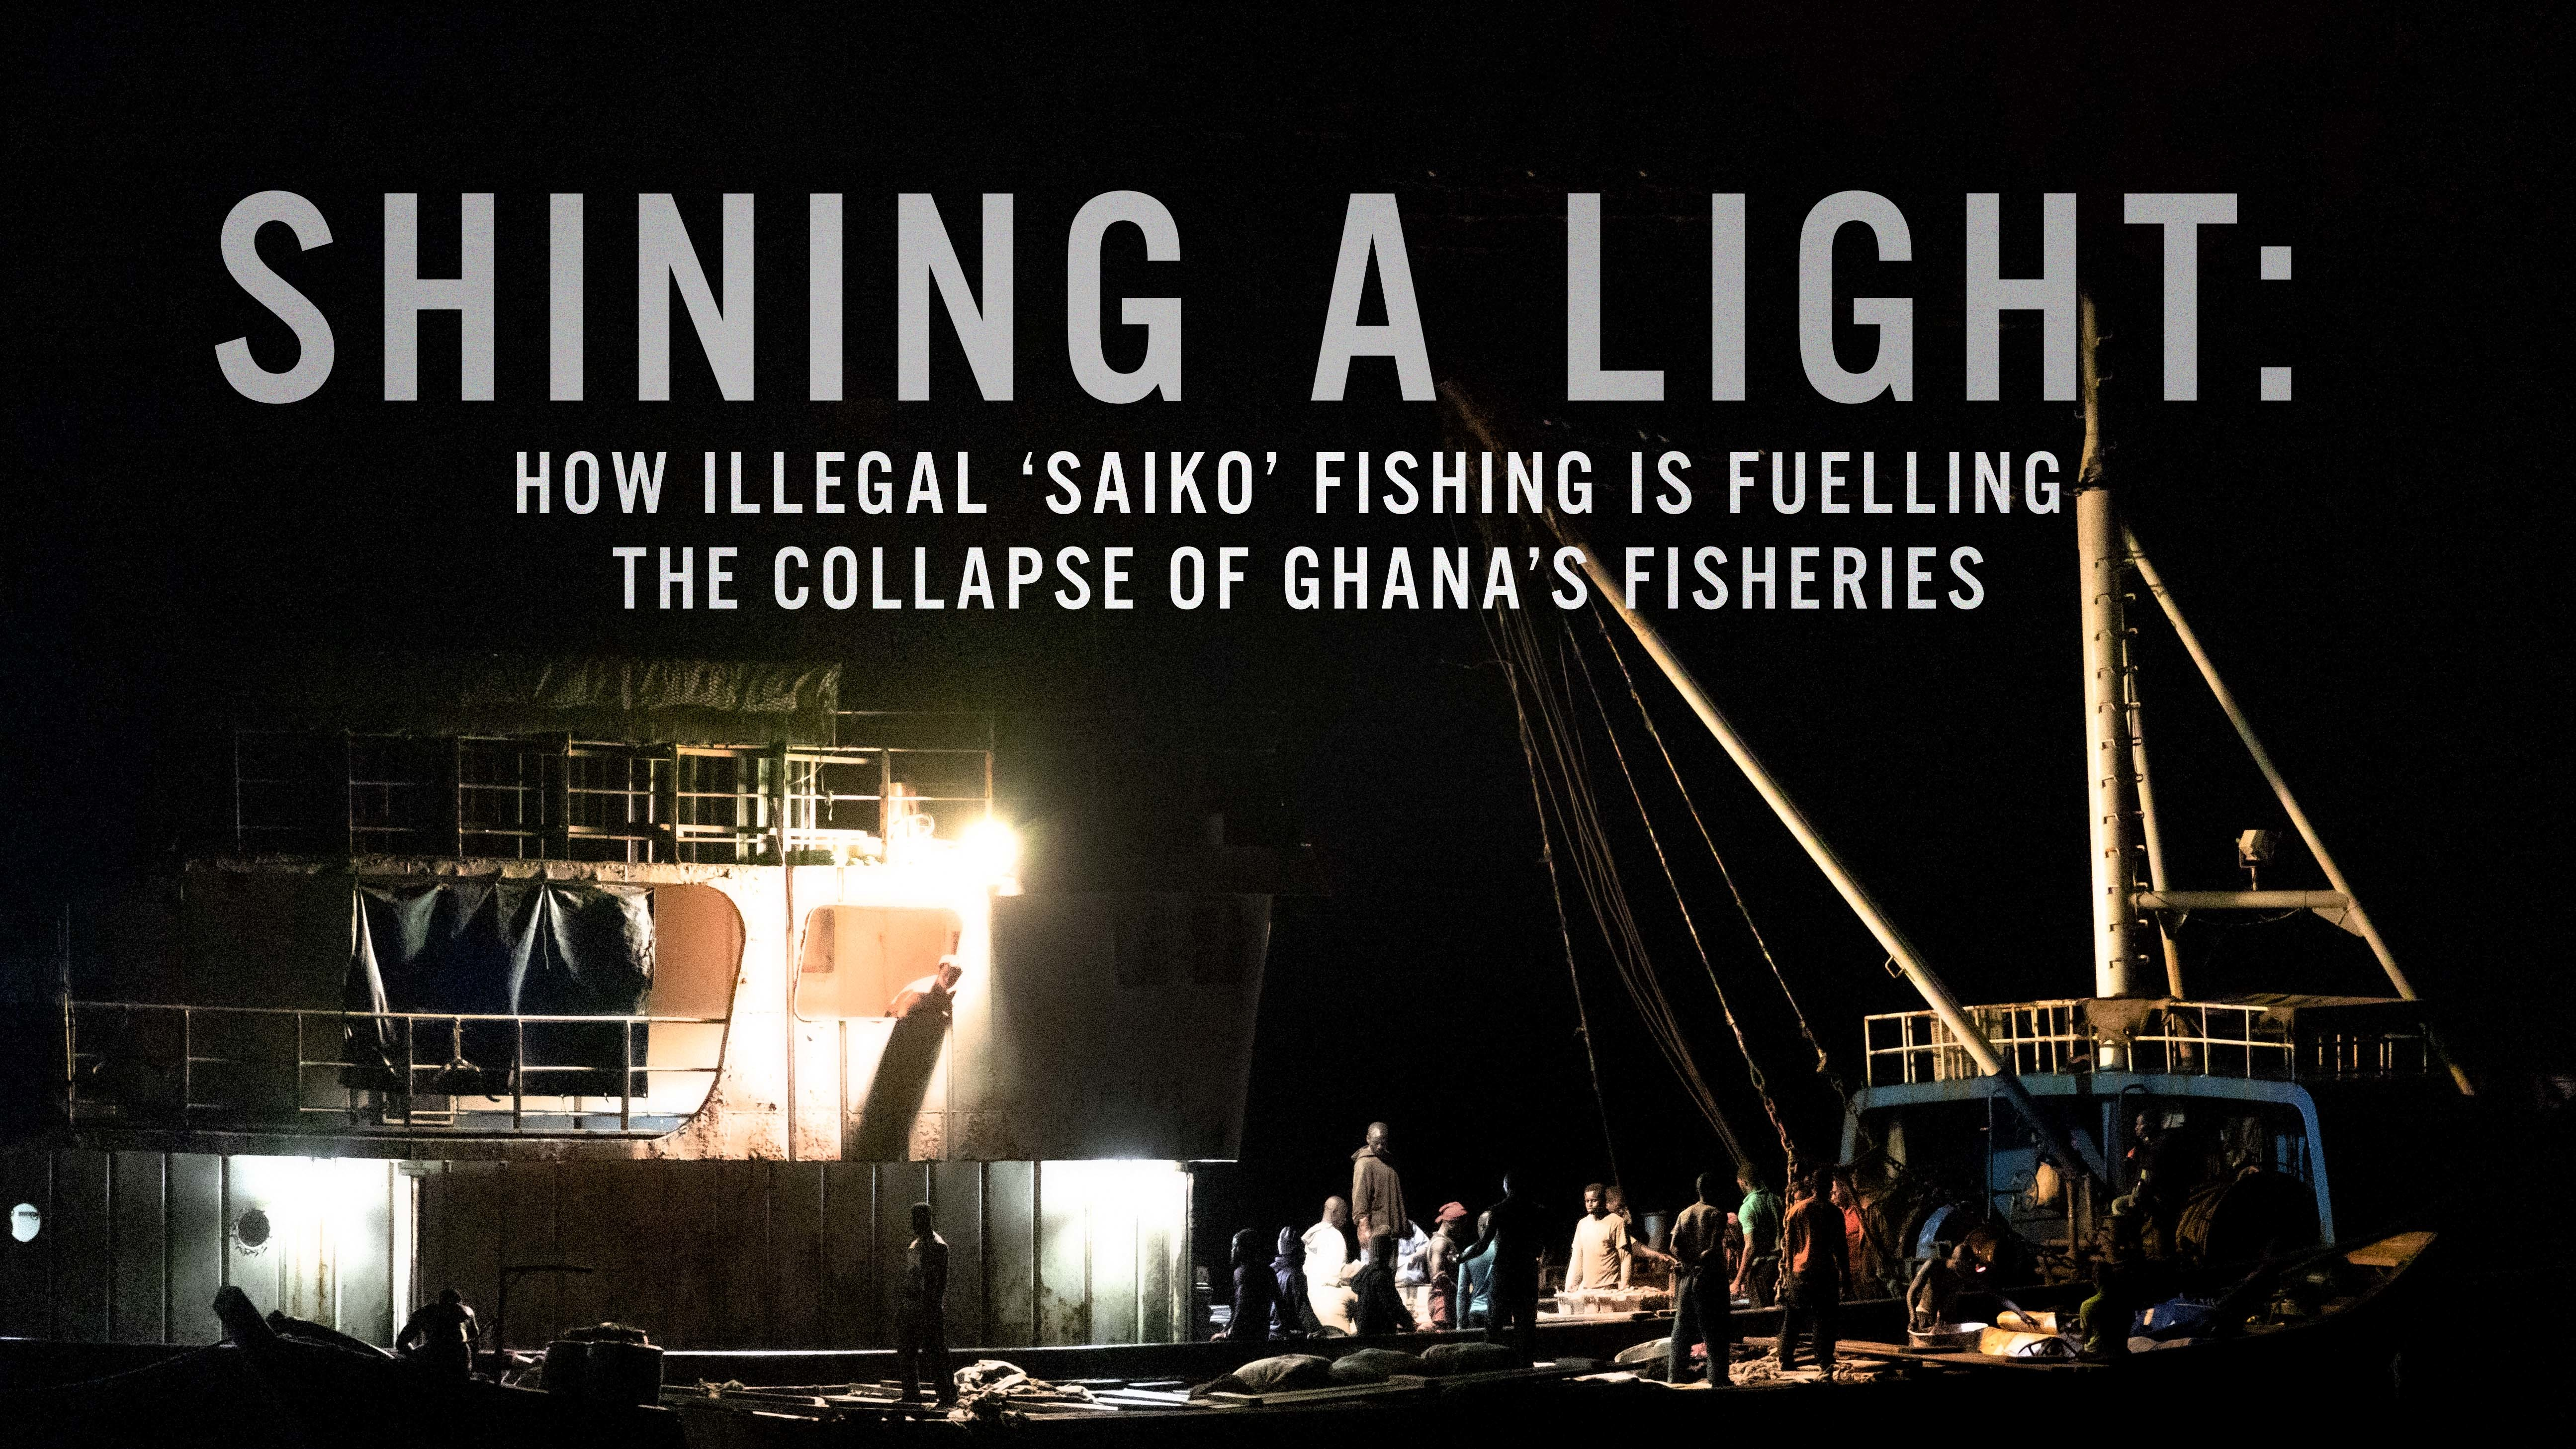 Shining a Light: How Illegal 'Saiko' Fishing is Fuelling the Collapse of Ghana's Fisheries